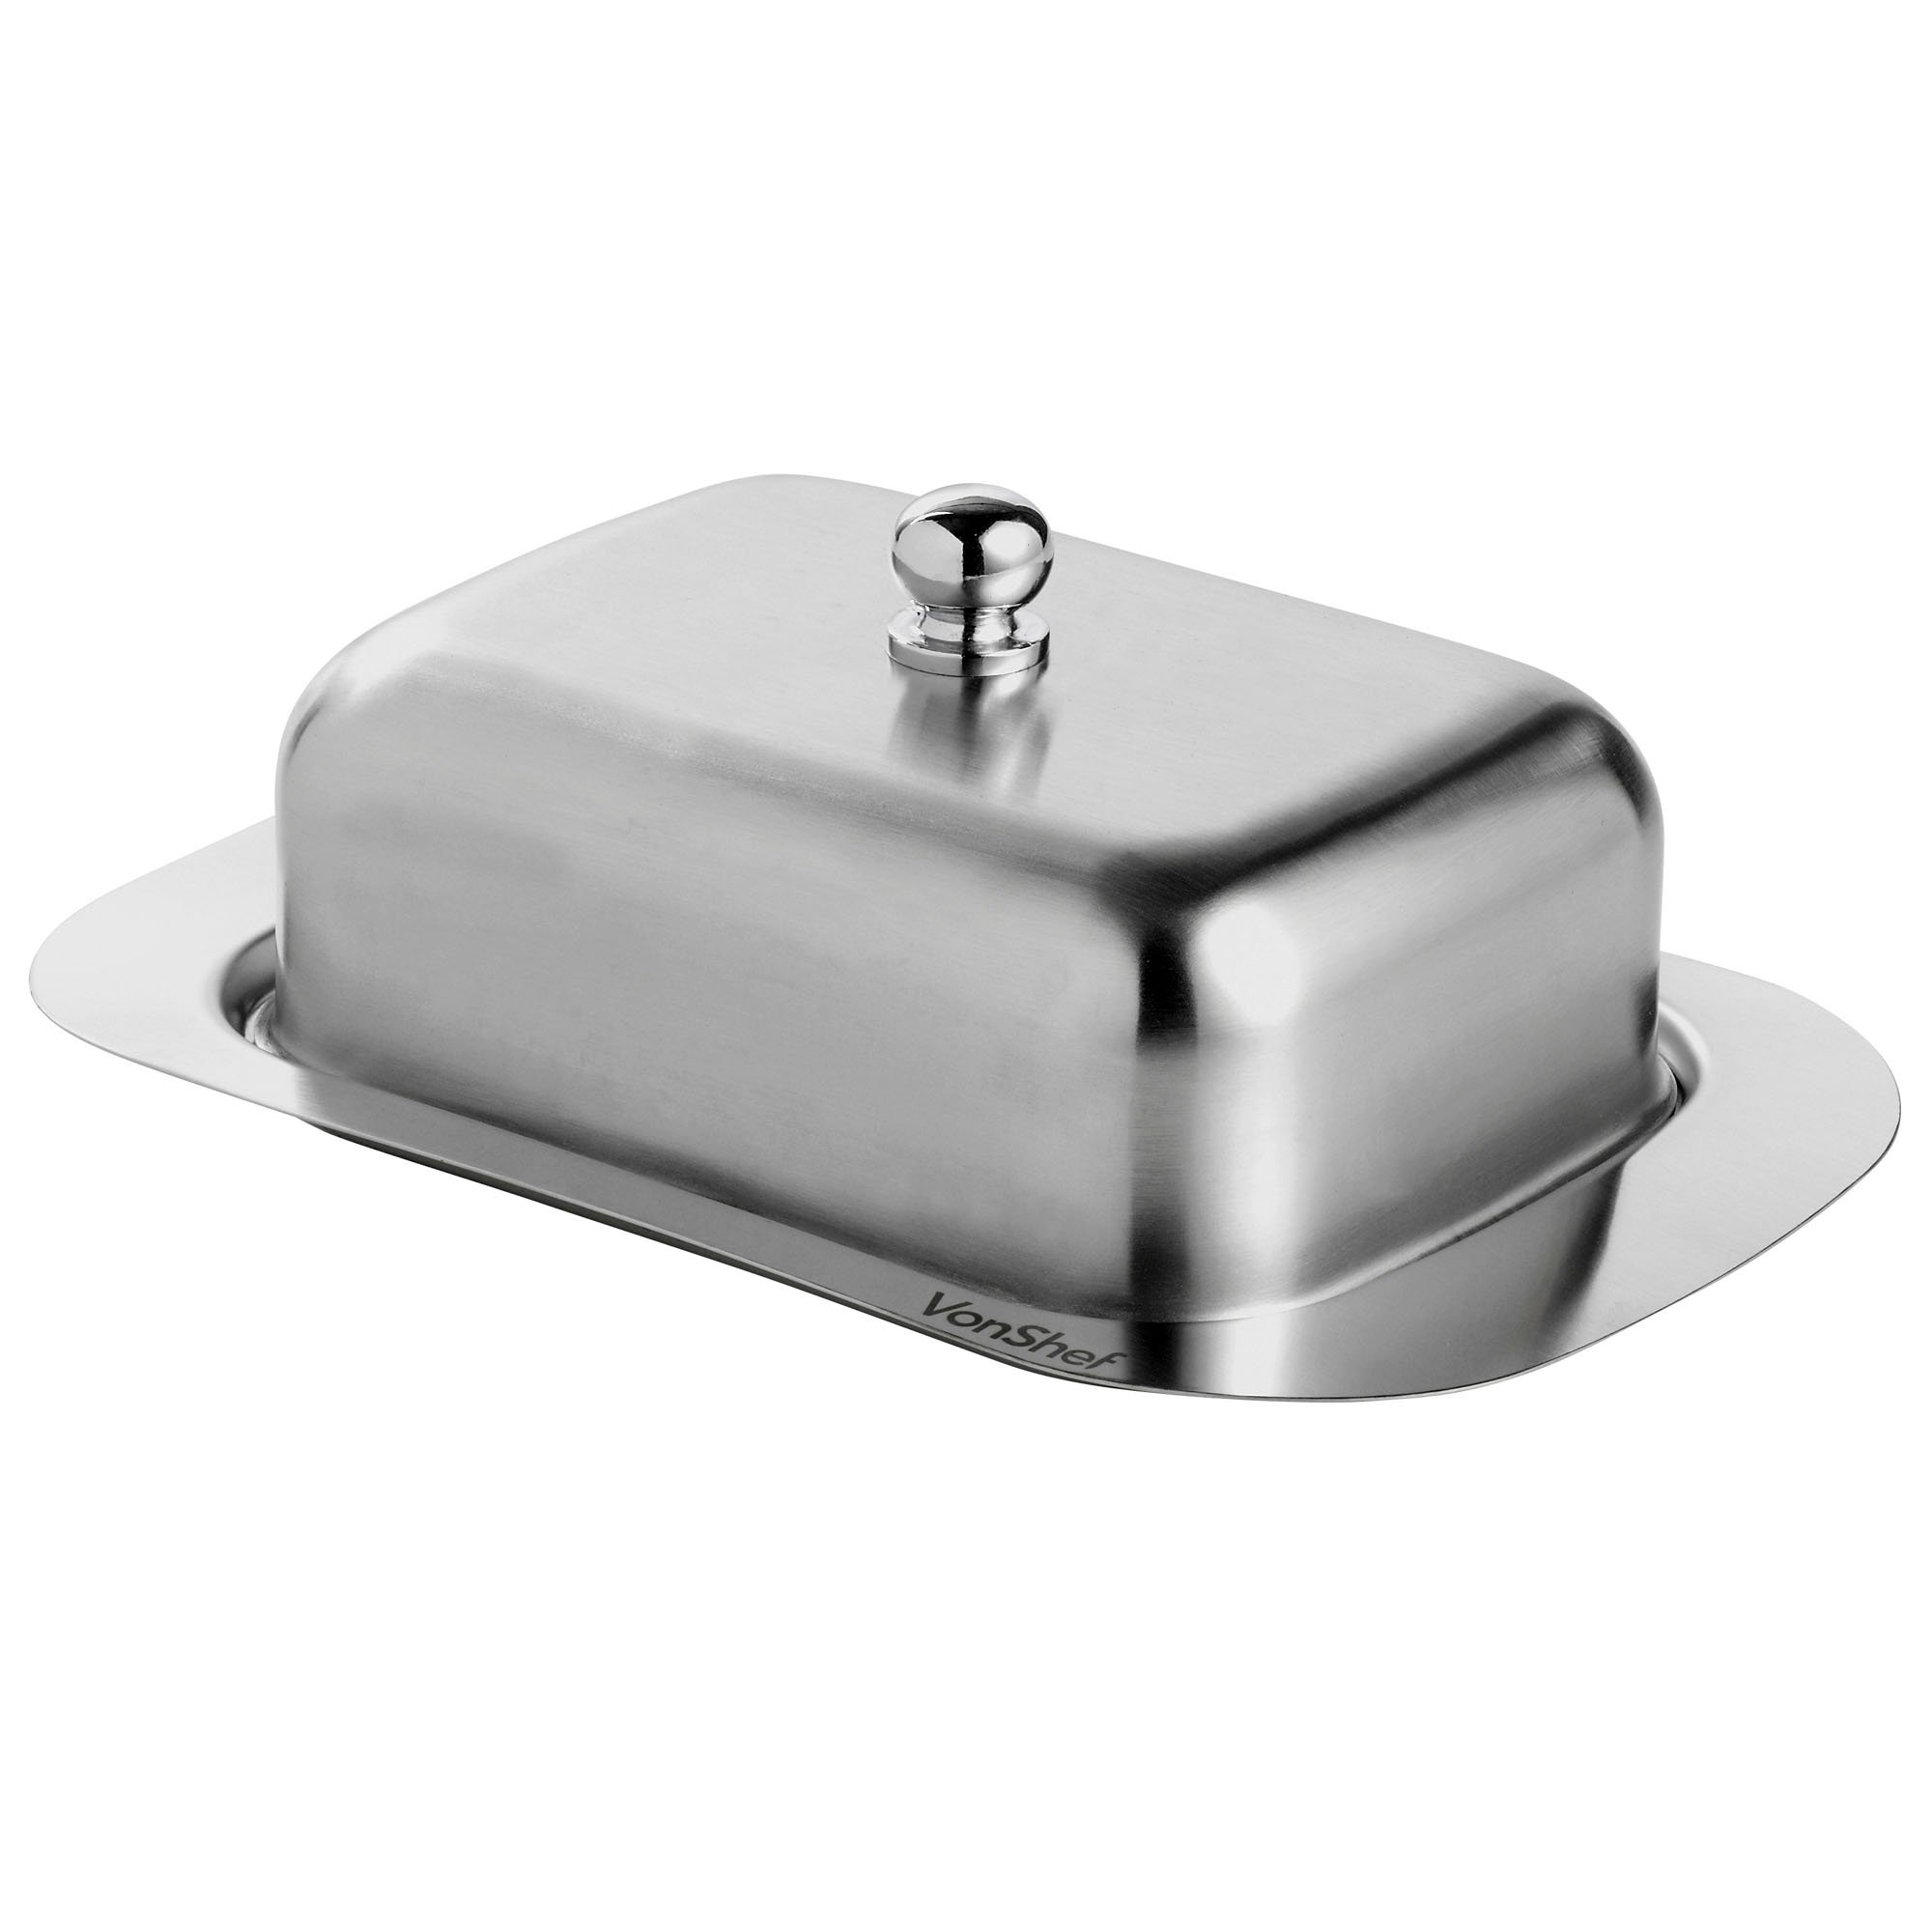 Luxury satin finish 201 quality stainless steel butter dish with lid